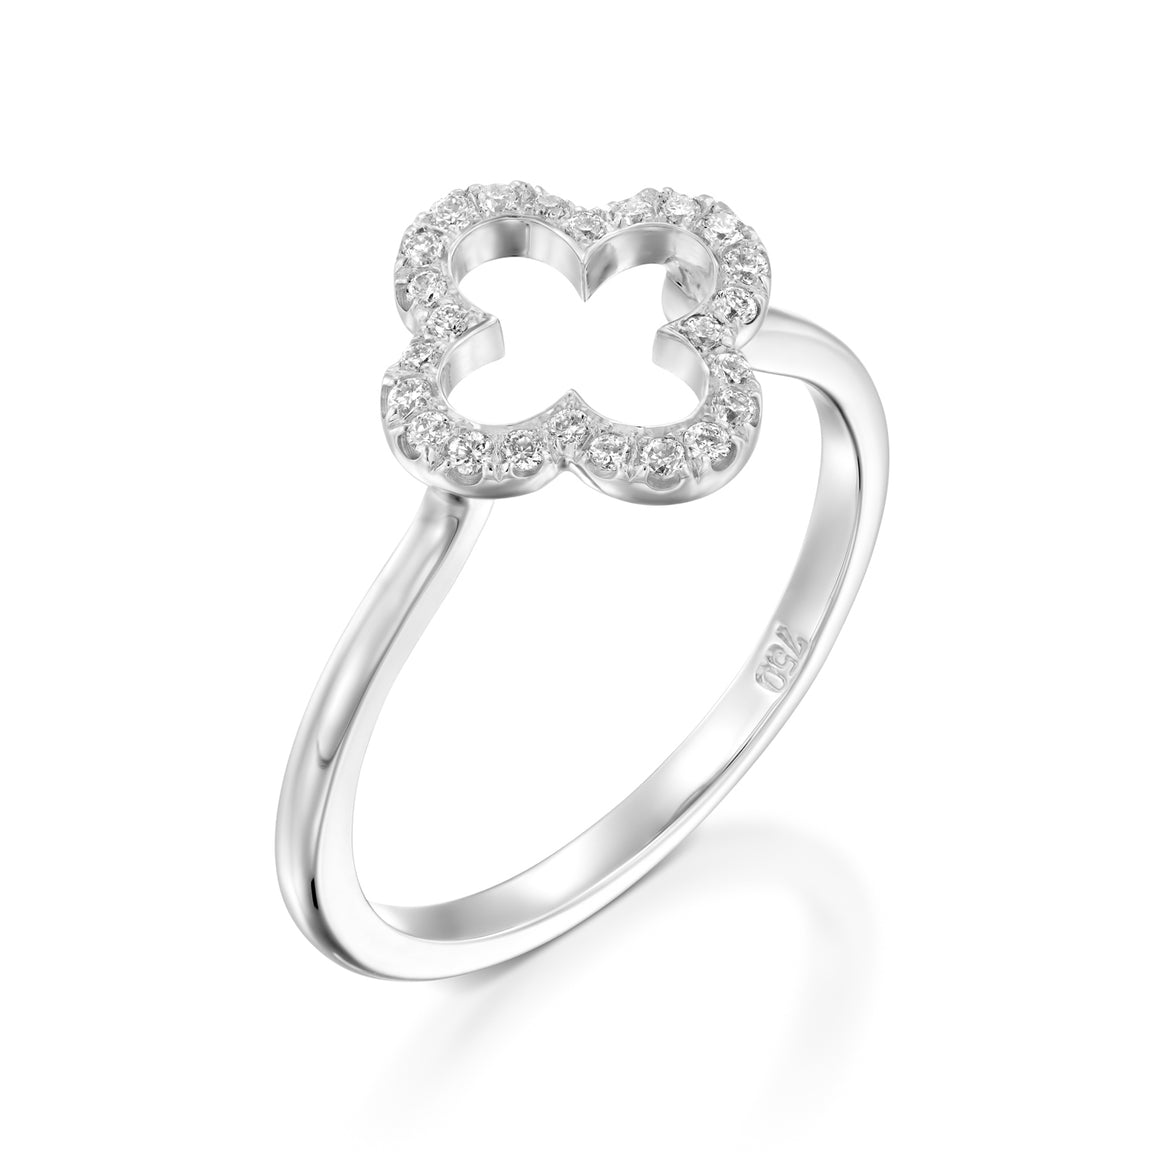 Diamond Clover ring in 18k white gold